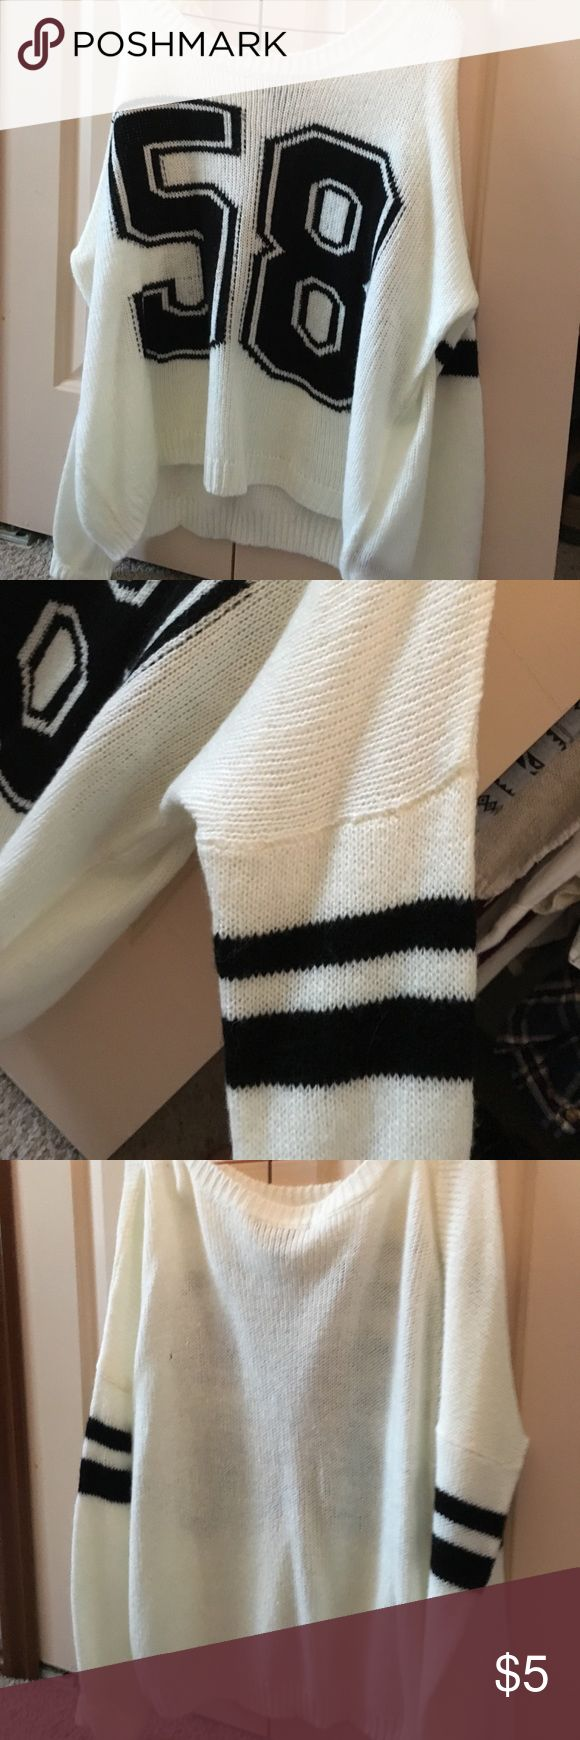 Forever 21 Sweater White sweater with black numbers 58, and black stripes on the sleeves. Never been worn. Forever 21 Sweaters Crew & Scoop Necks